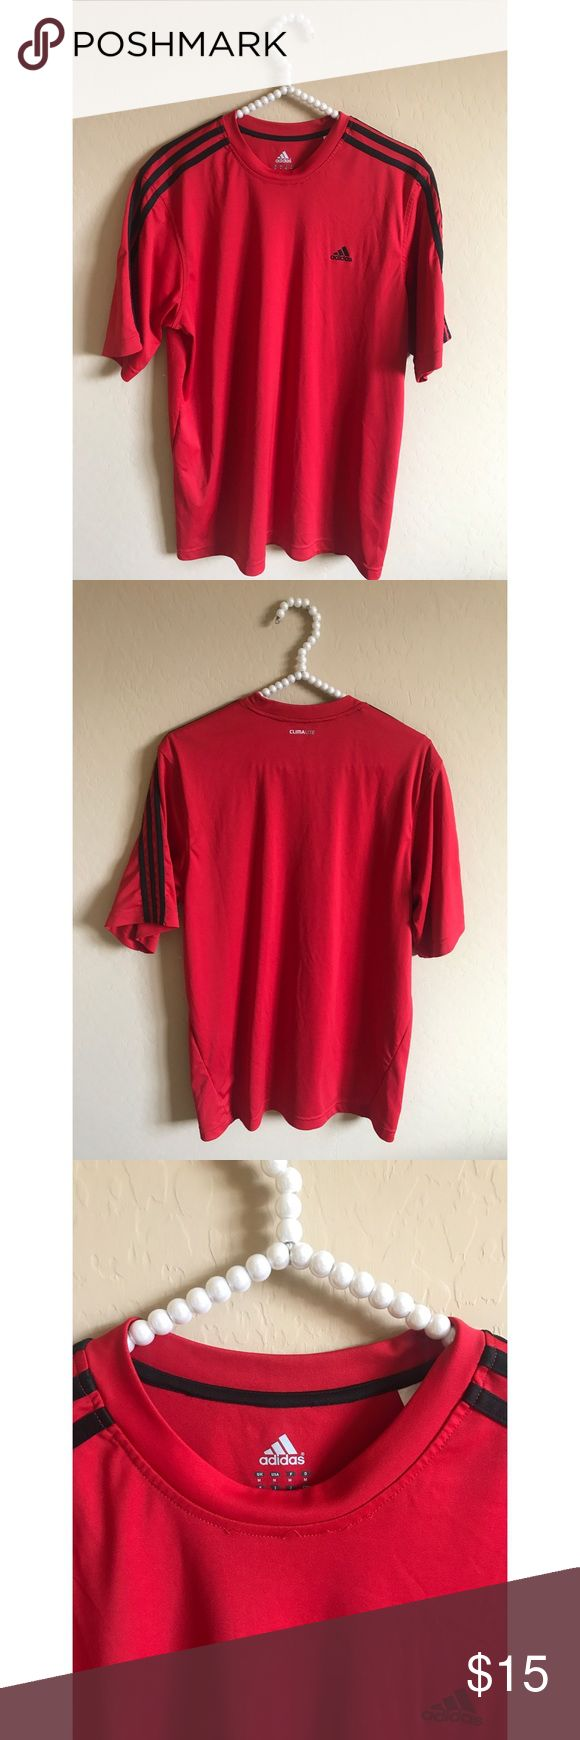 Red Adidas Workout Shirt Excellent condition, the threading came slightly undone on the neckline (view third photo) but doesn't affect it Adidas Shirts Tees - Short Sleeve